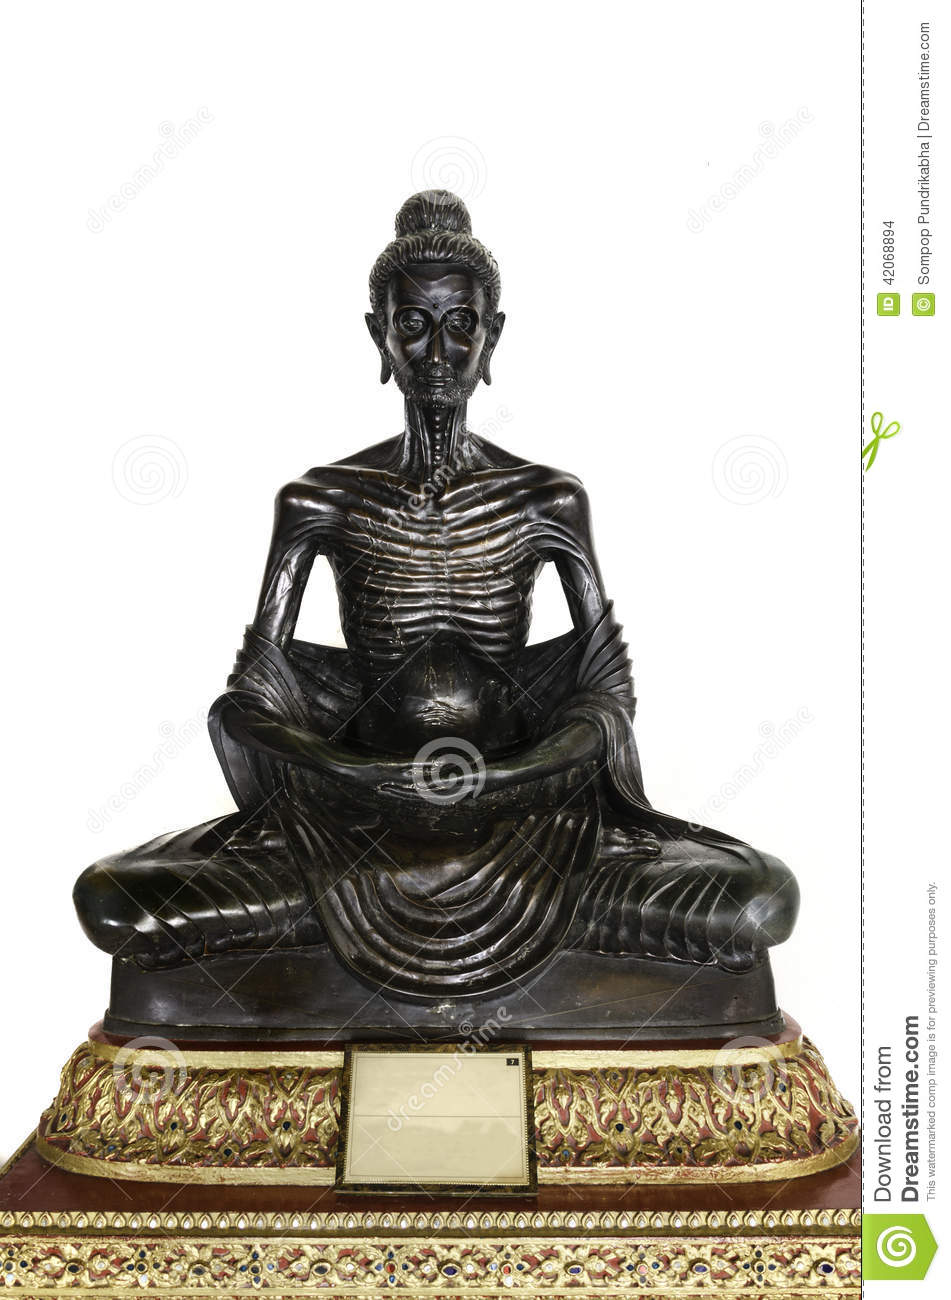 black buddha statue posture skinny stock photo image. Black Bedroom Furniture Sets. Home Design Ideas